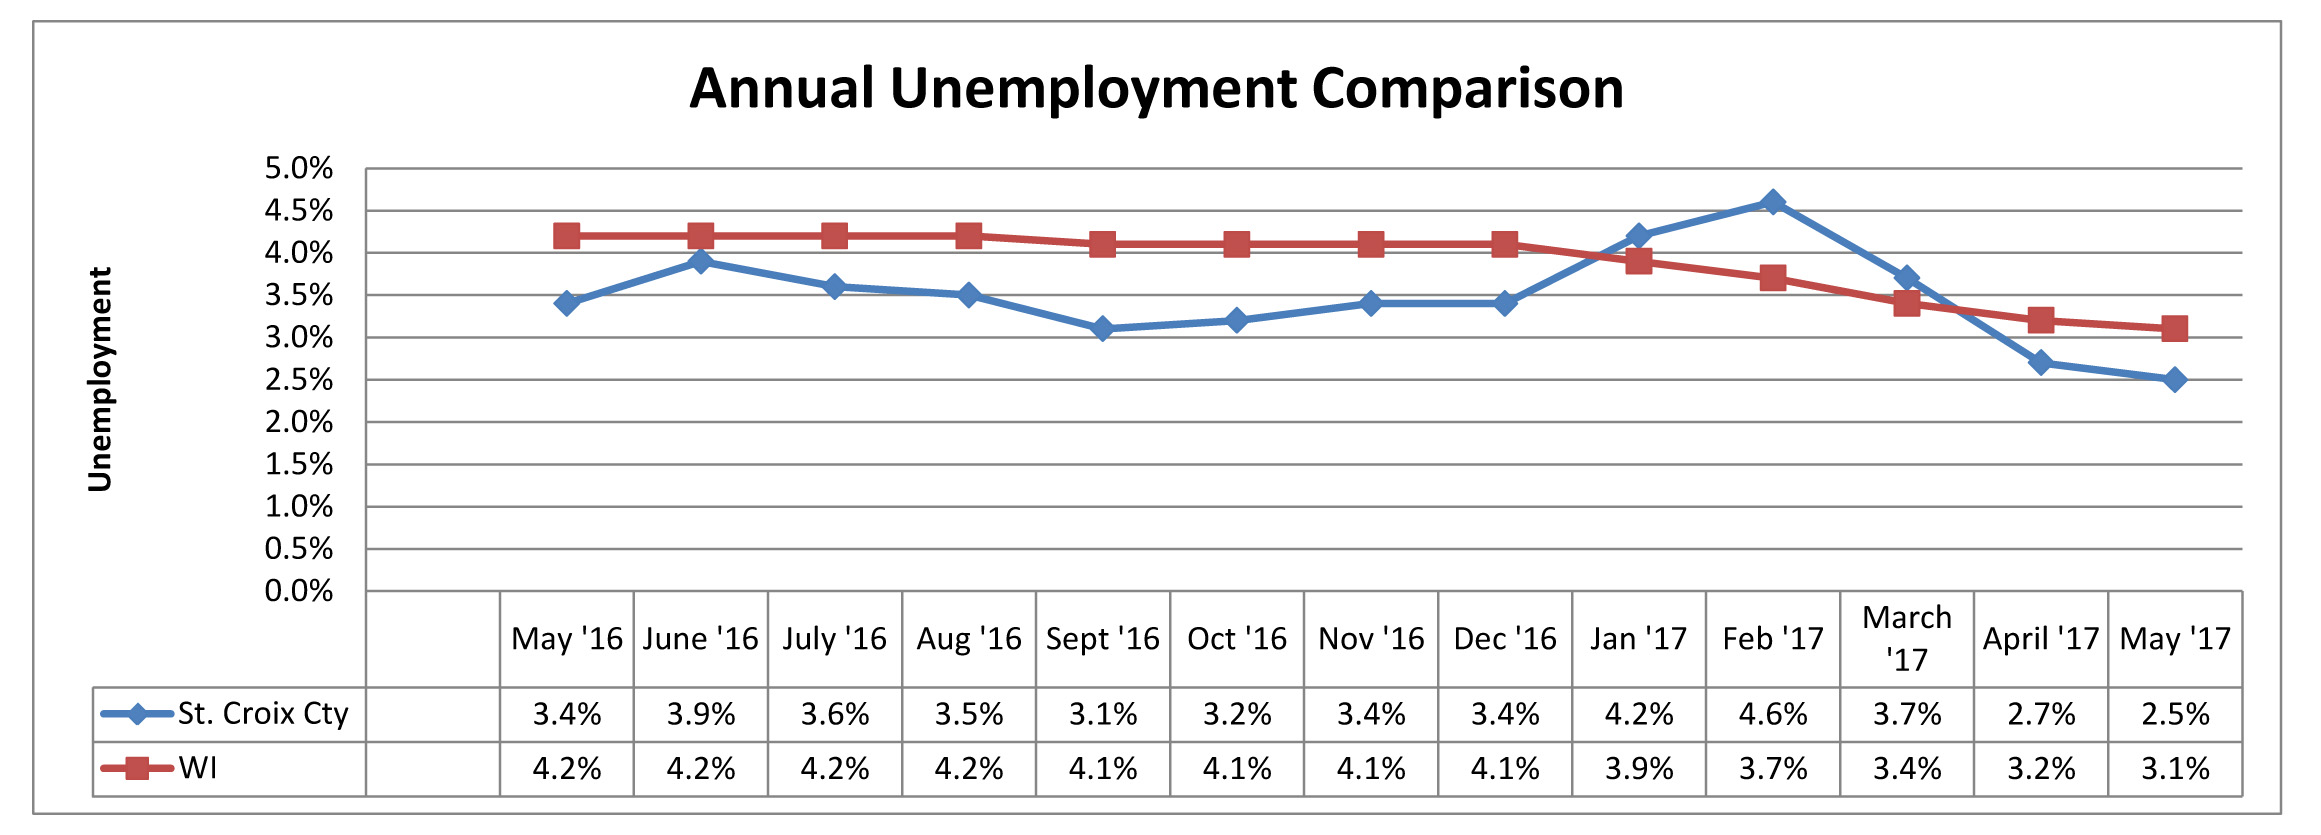 Annual Unemployment Comparison May 2017